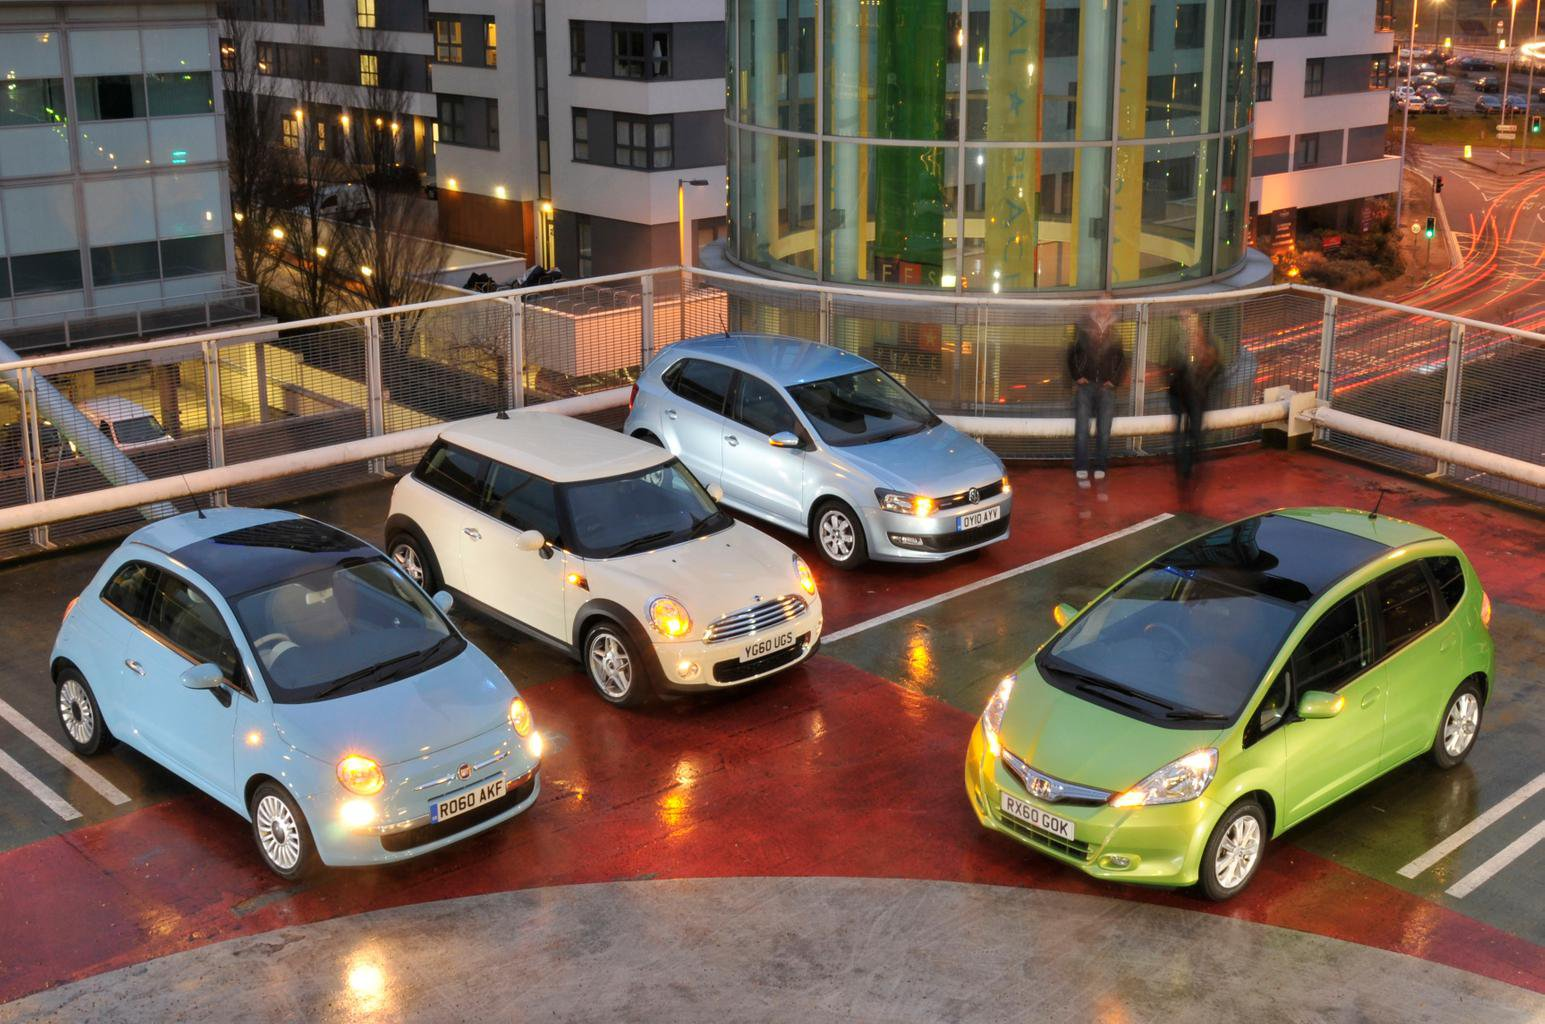 Used test – smart small cars: Fiat 500 vs Honda Jazz vs Mini One vs Volkswagen Polo